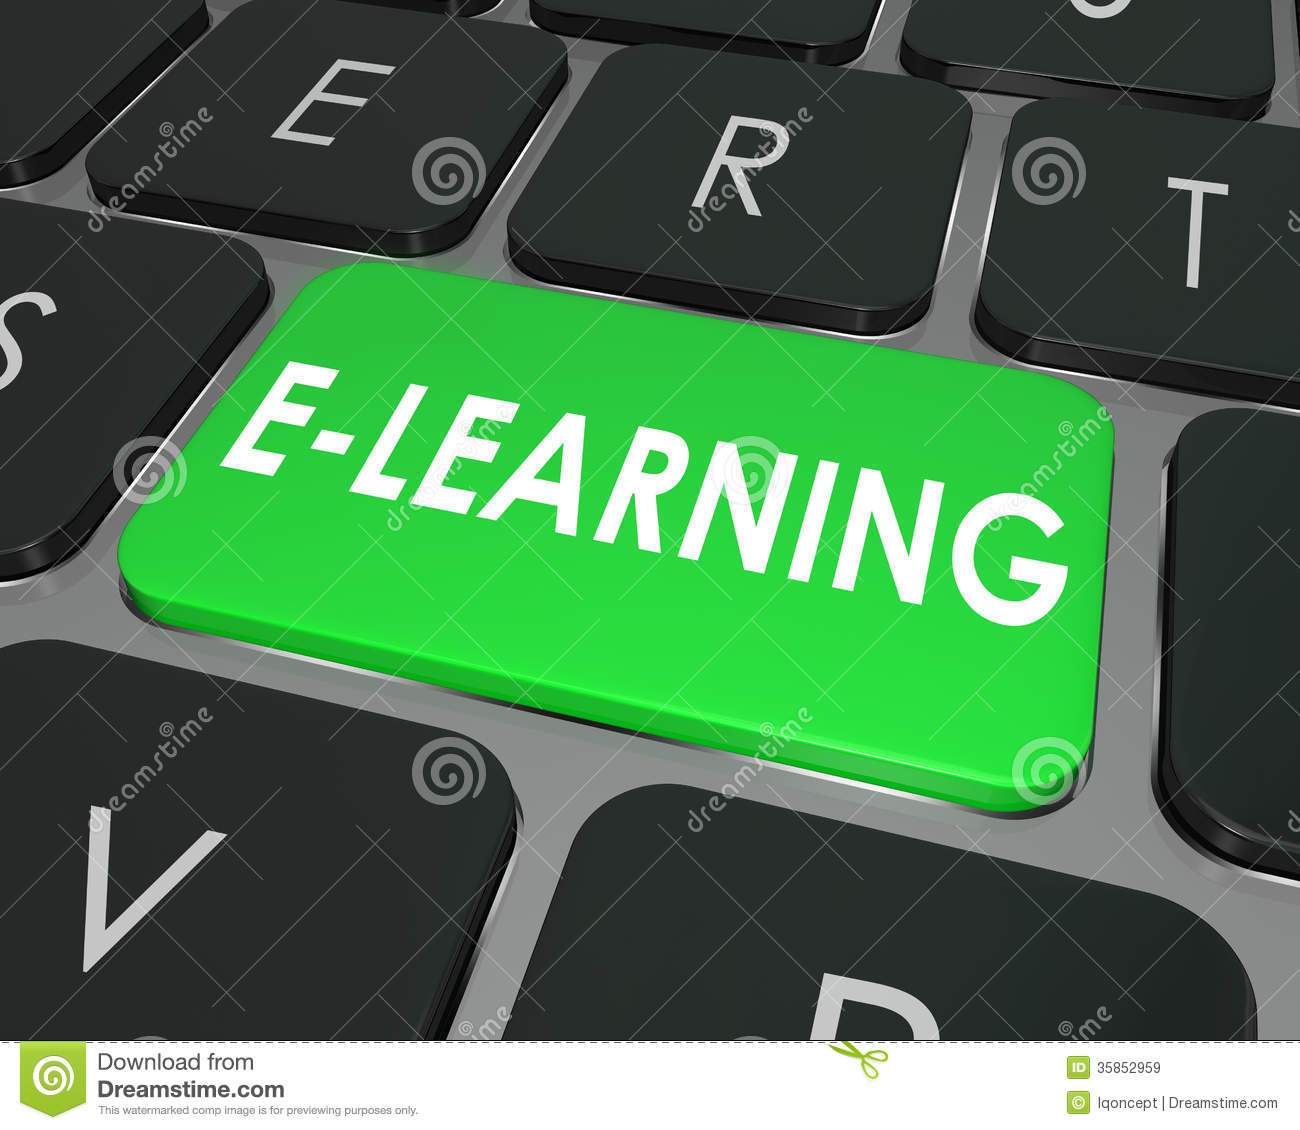 Educational Leadership and Administration online computer classes college credit